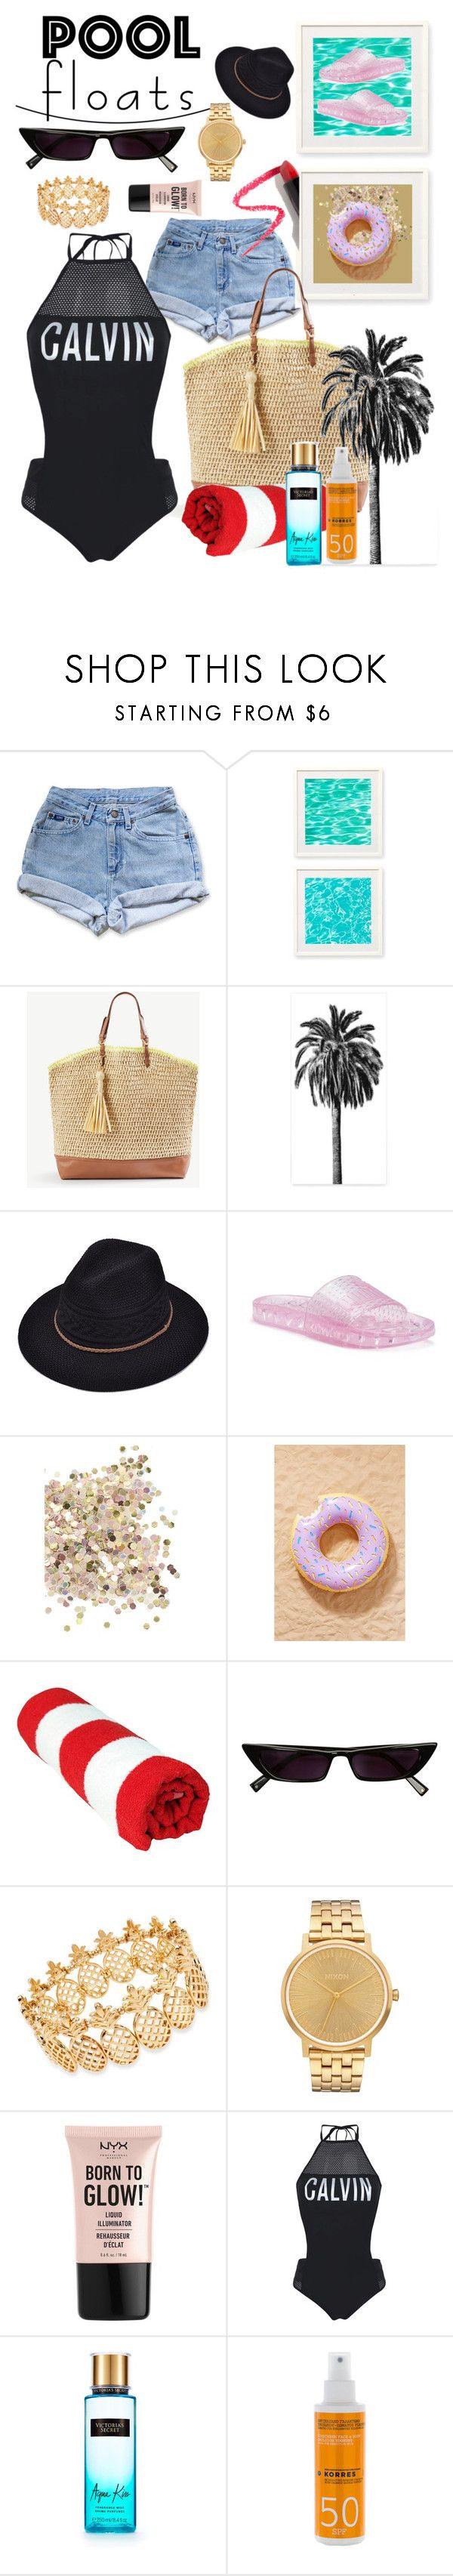 """Pool Party"" by marmura ❤ liked on Polyvore featuring Levi's, Two's Company, Ann Taylor, Puma, Topshop, Urban Outfitters, INC International Concepts, Nixon, NYX and Calvin Klein"